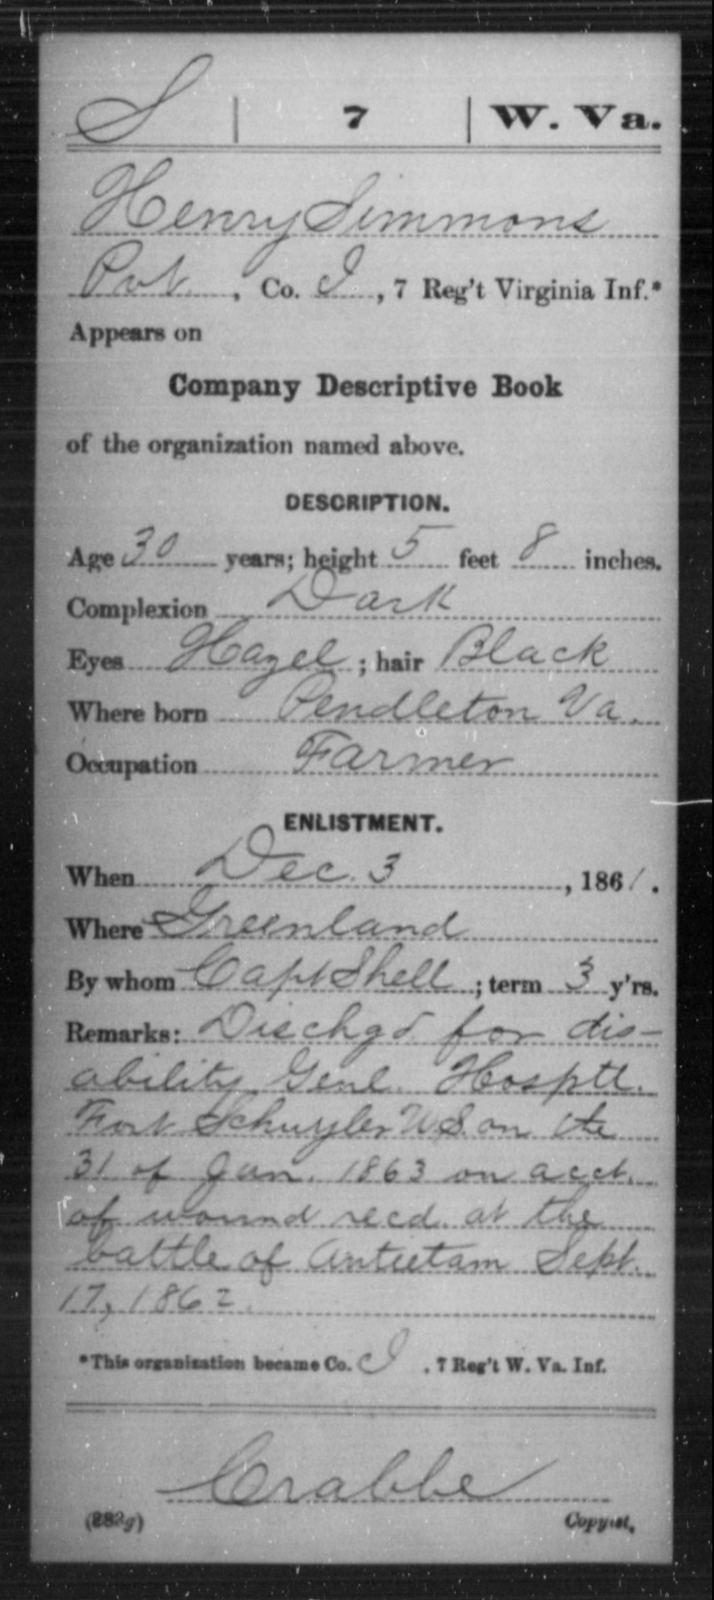 Simmons, Henry - Age 30, Year: 1861 - Miscellaneous Card Abstracts of Records - West Virginia